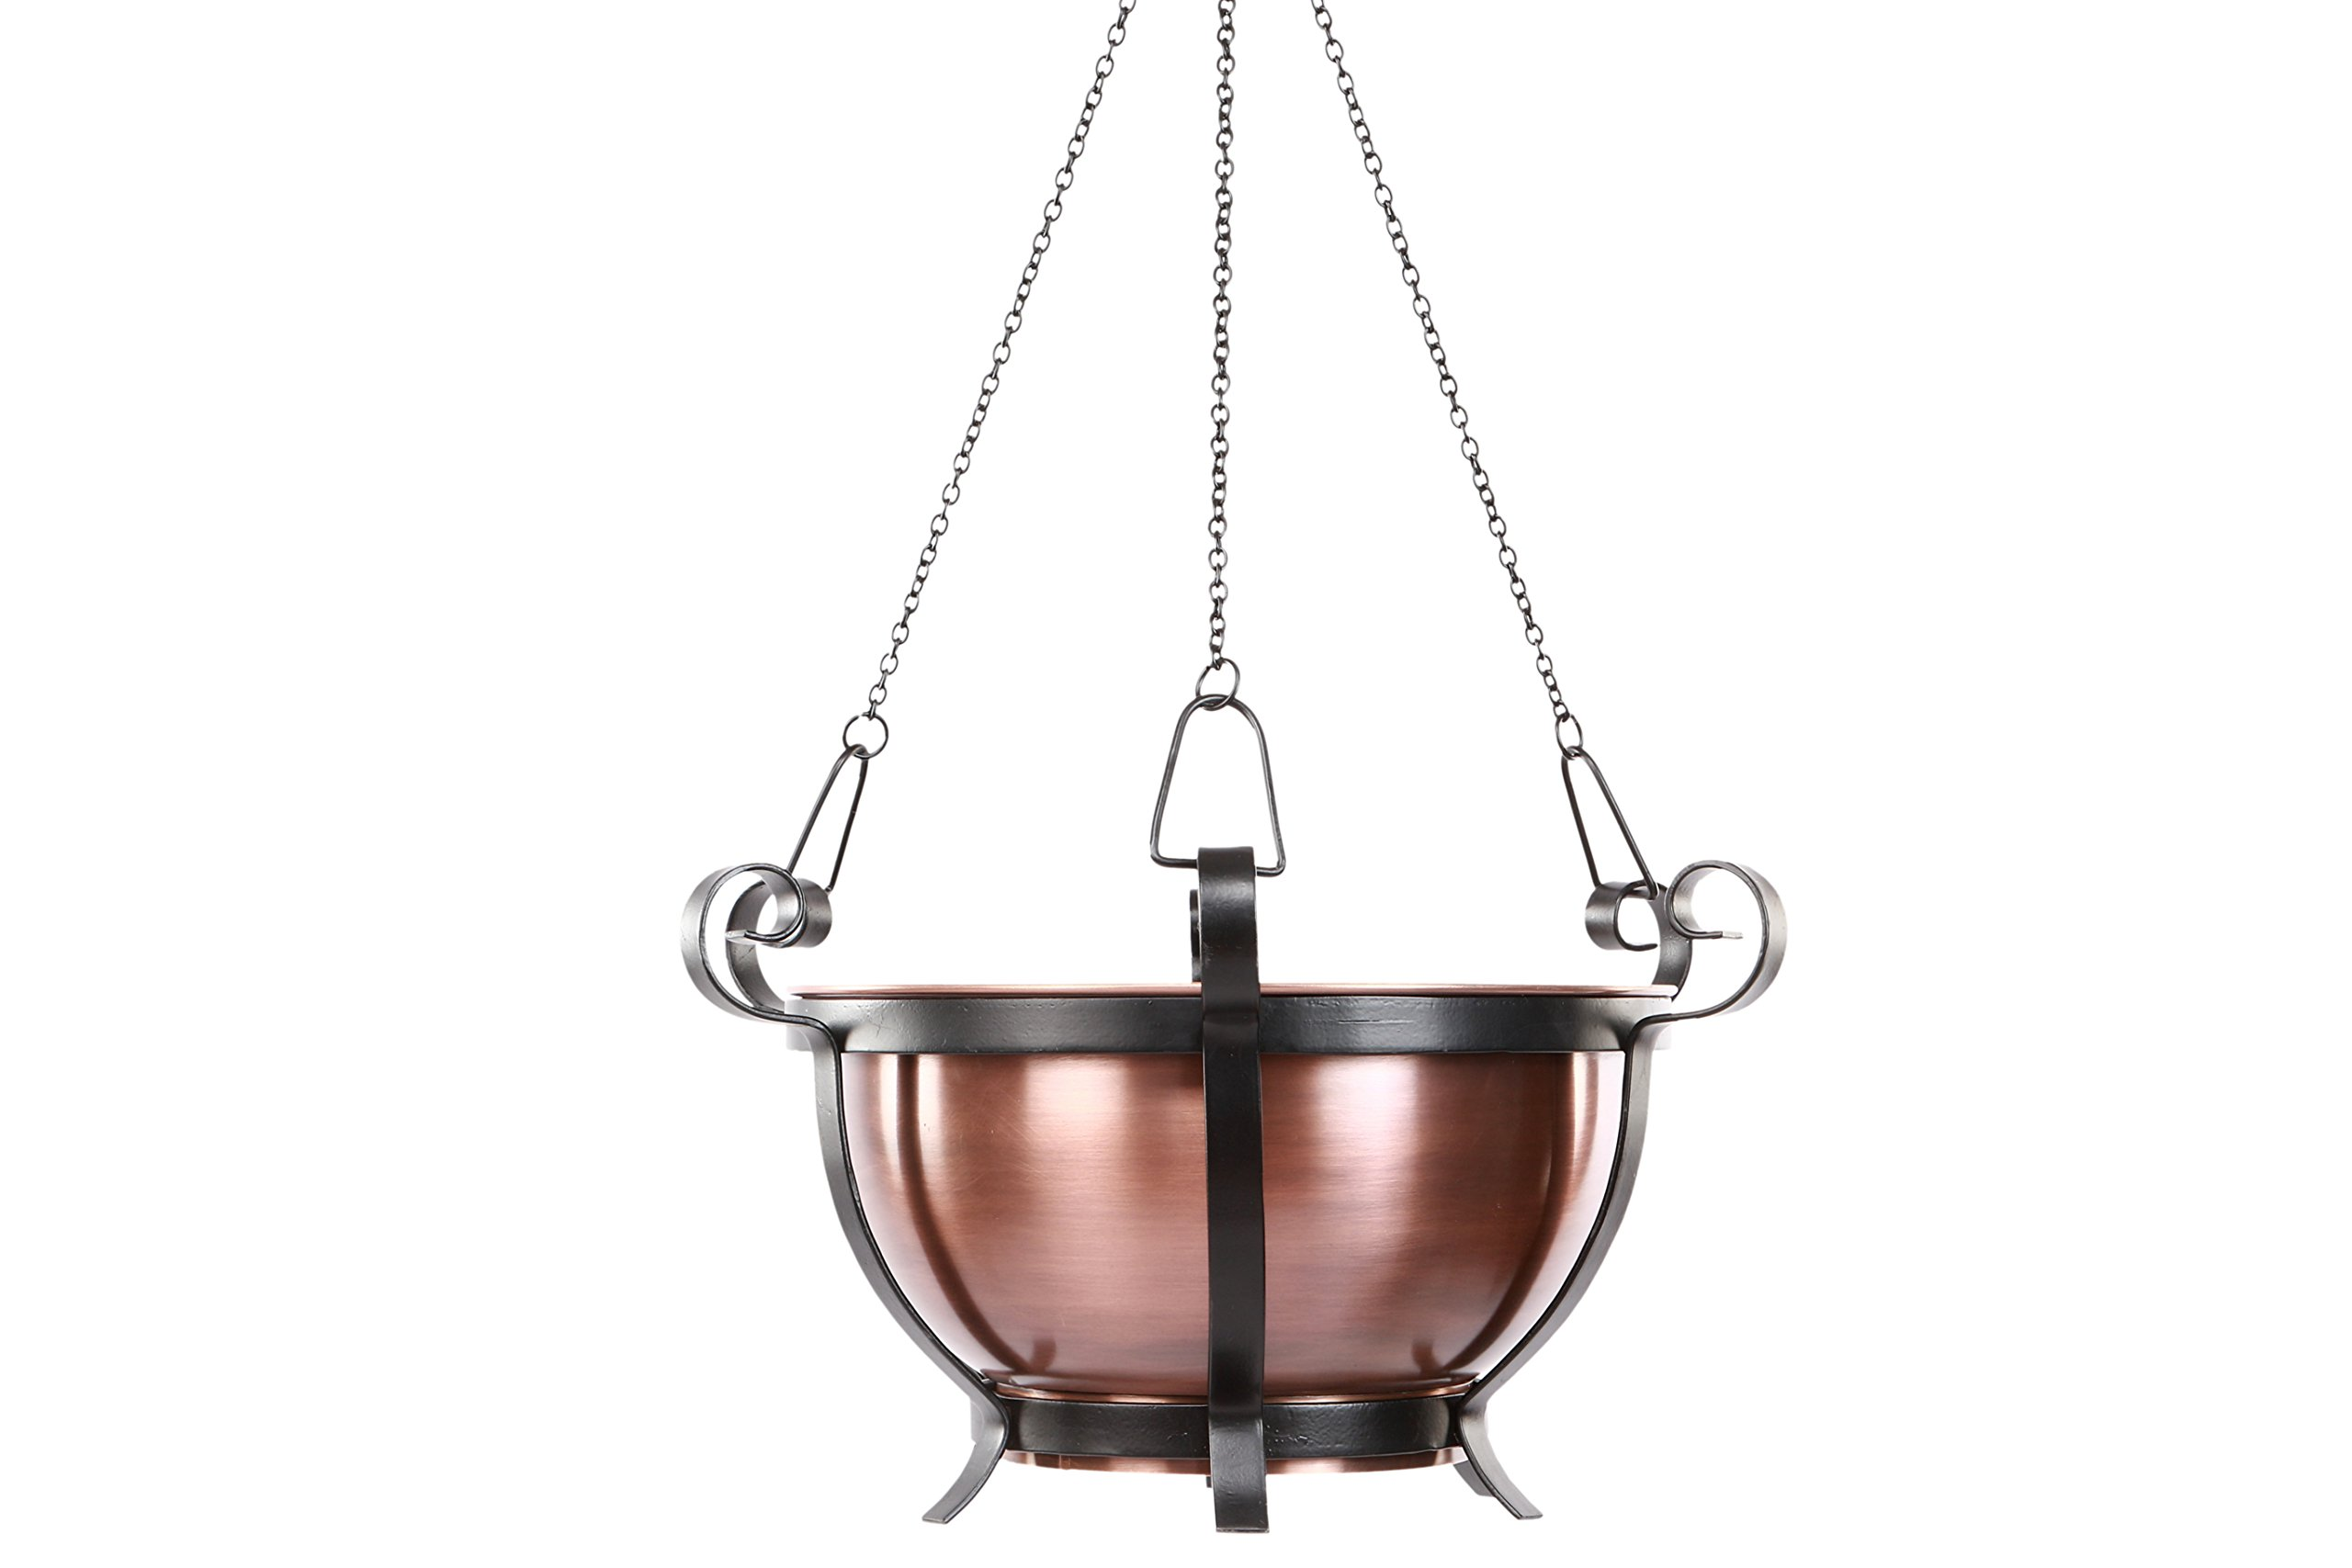 H Potter Patio Hanging Outdoor Copper Garden Planter